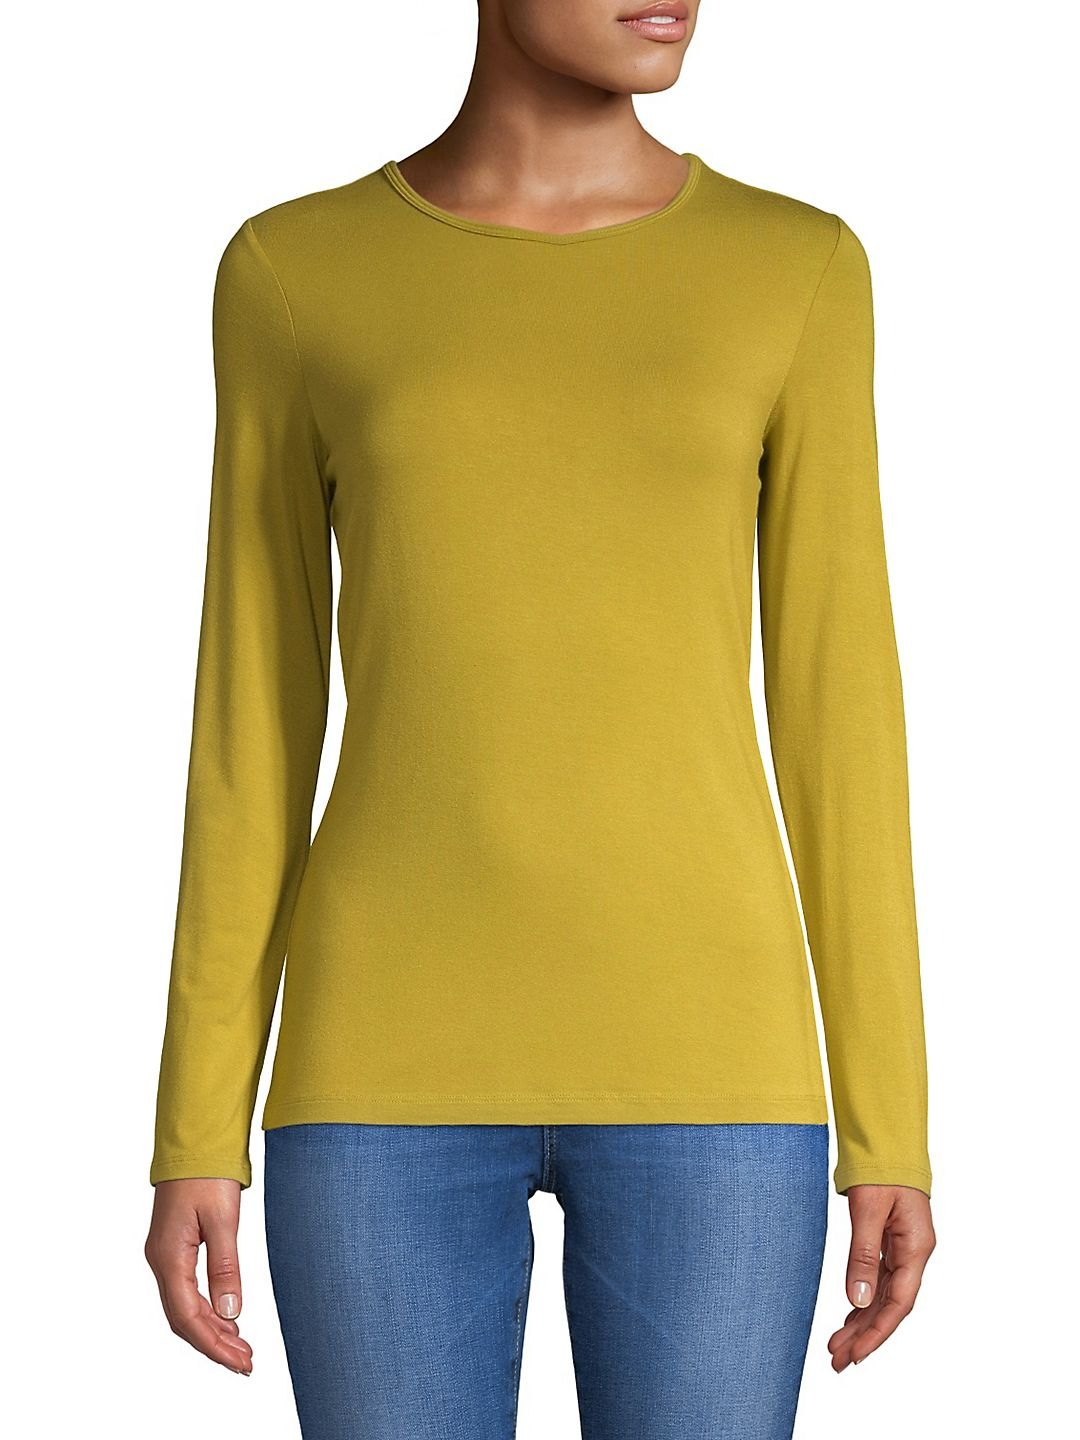 Long-Sleeve Iconic Fit Crew Neck Tee